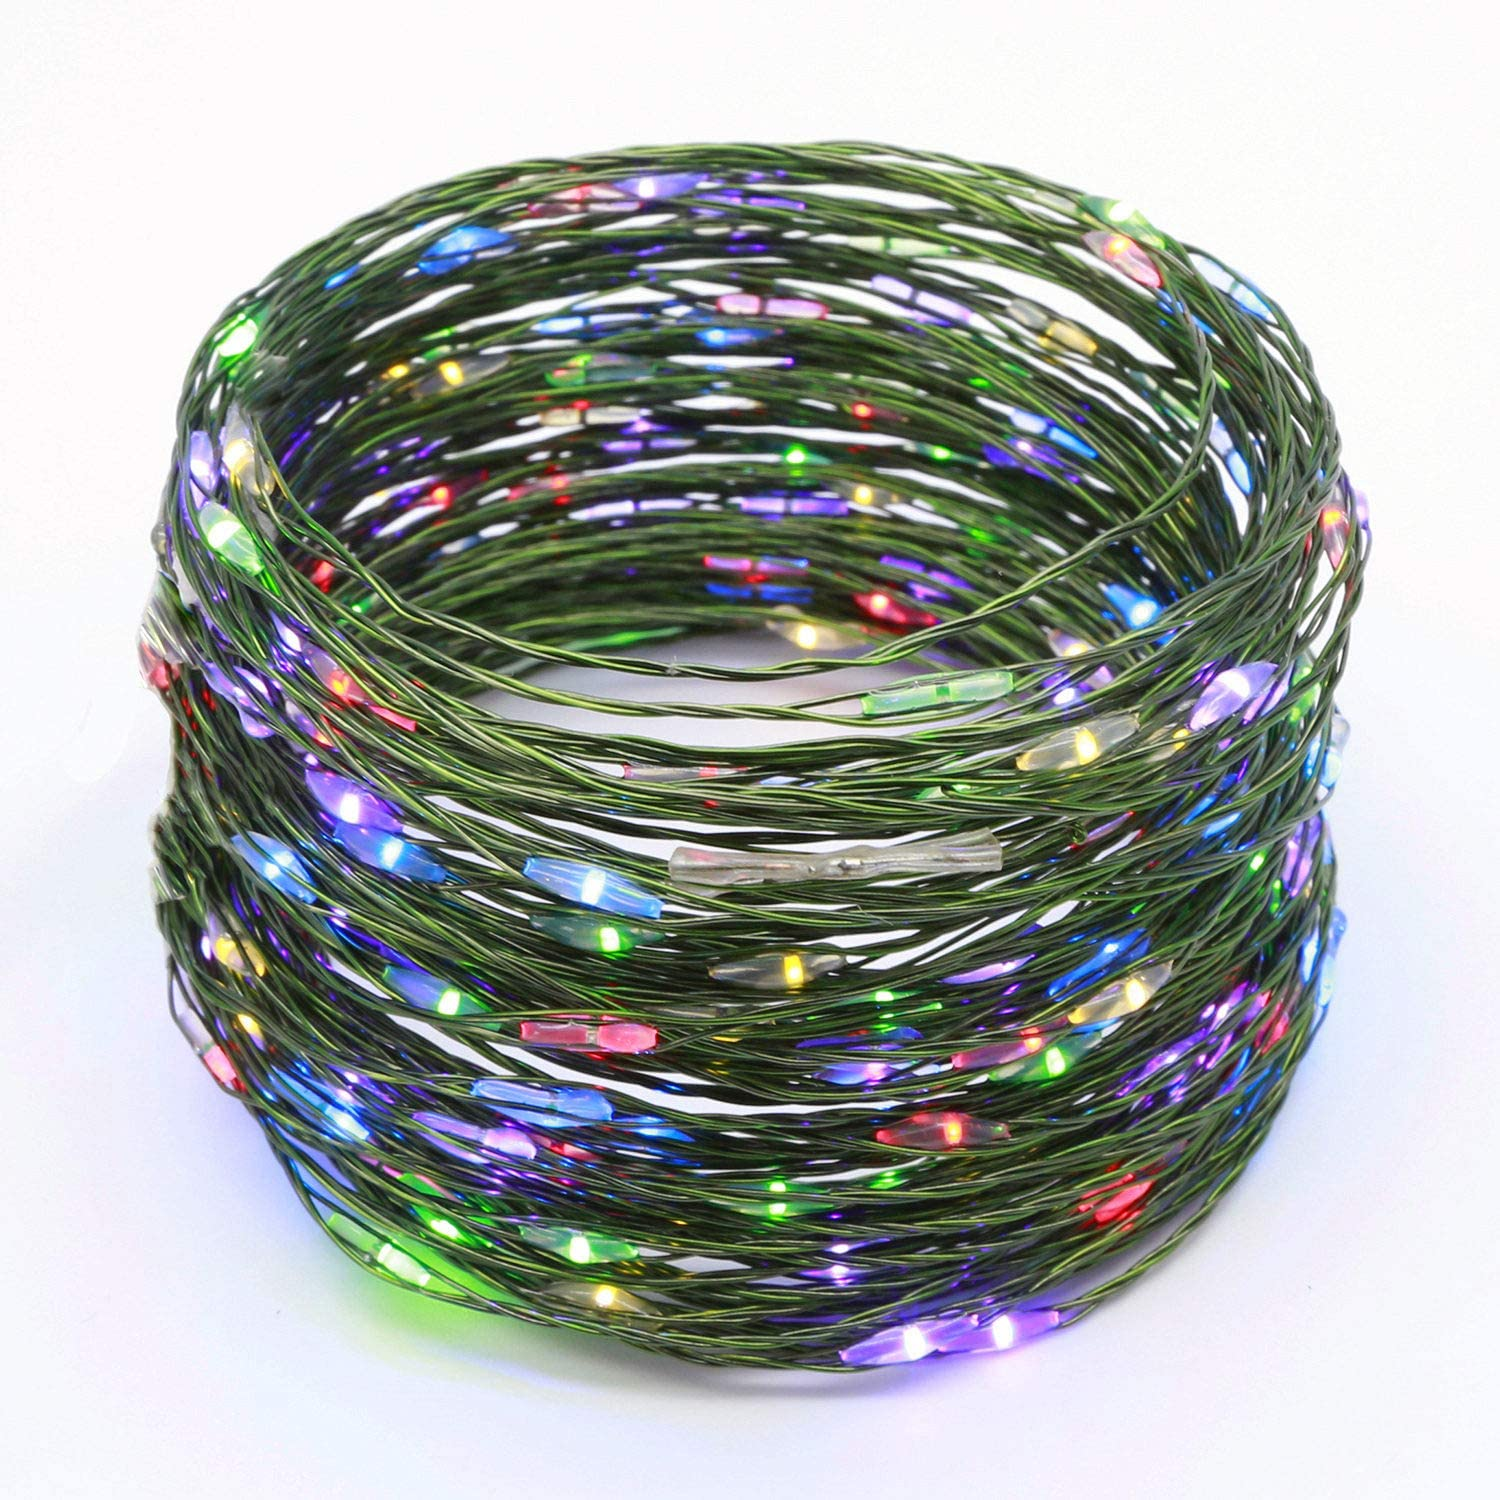 YULETIME Fairy String Lights with Adapter, 50 Feet 150 LEDs Waterproof Starry Copper Wire Lights, Home Decor Firefly Lights for Garden Backyard Christmas Tree (Multicolor, Green Wire)